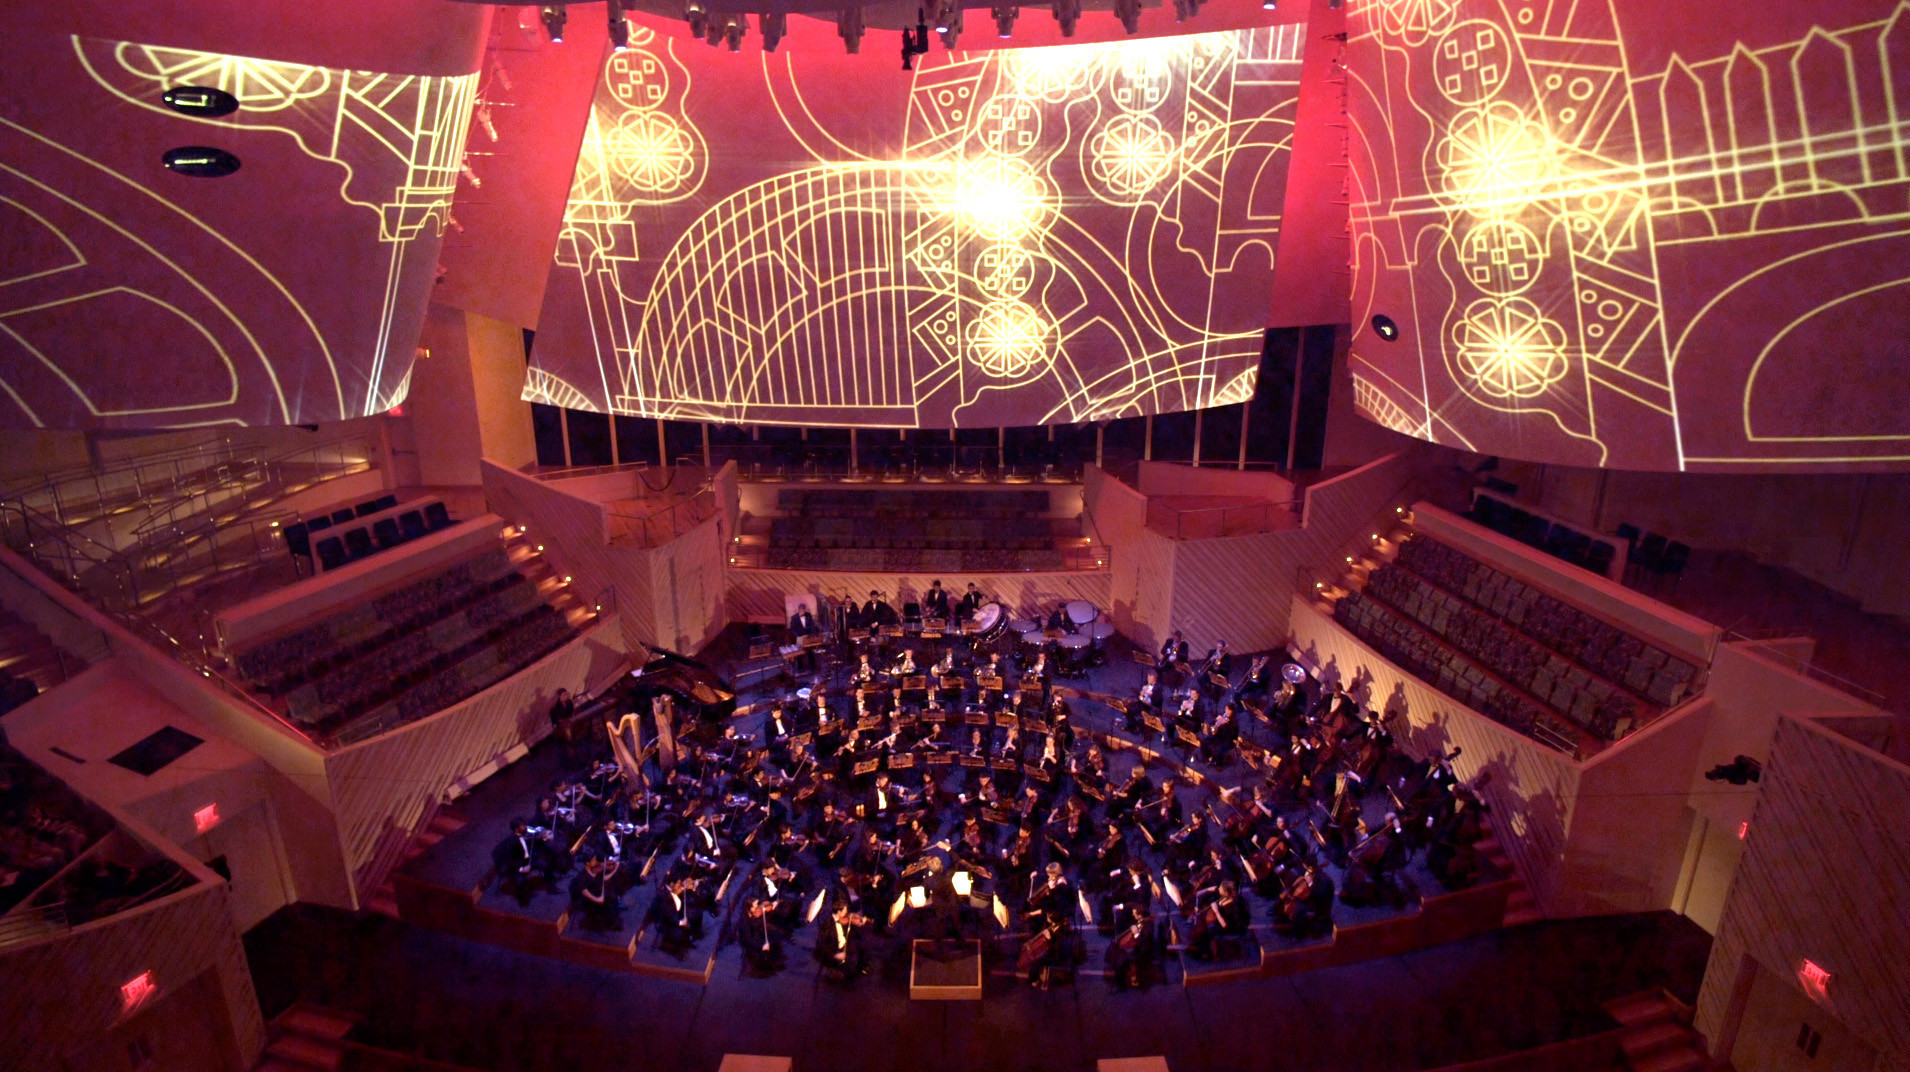 An animation installation designed by Patterson + Reckinger, with imagery by Ria Ama, at Miami's New World Symphony in 2011.